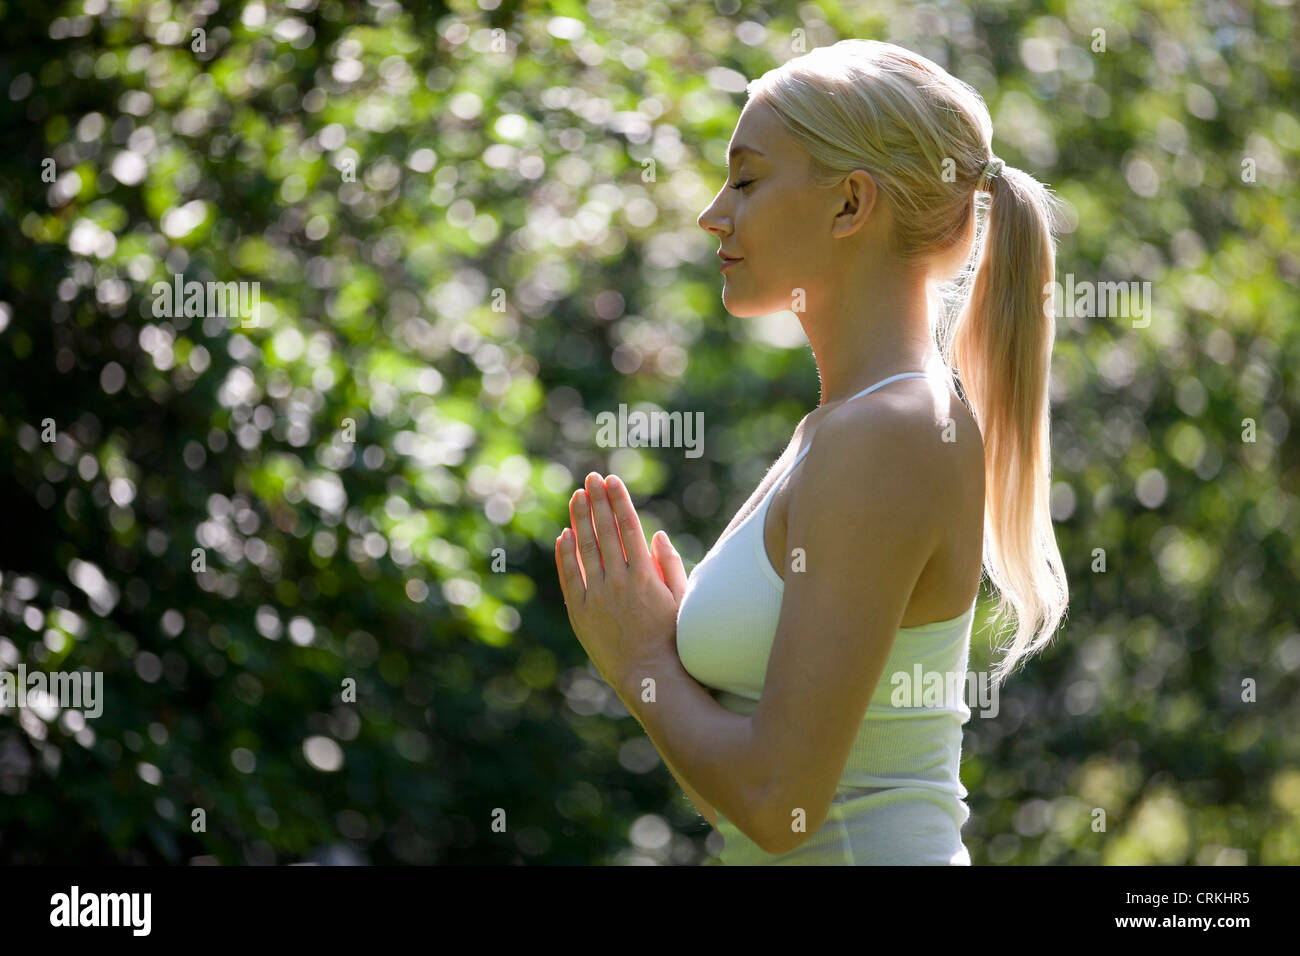 A young woman practicing yoga outside, hands in prayer position Stock Photo